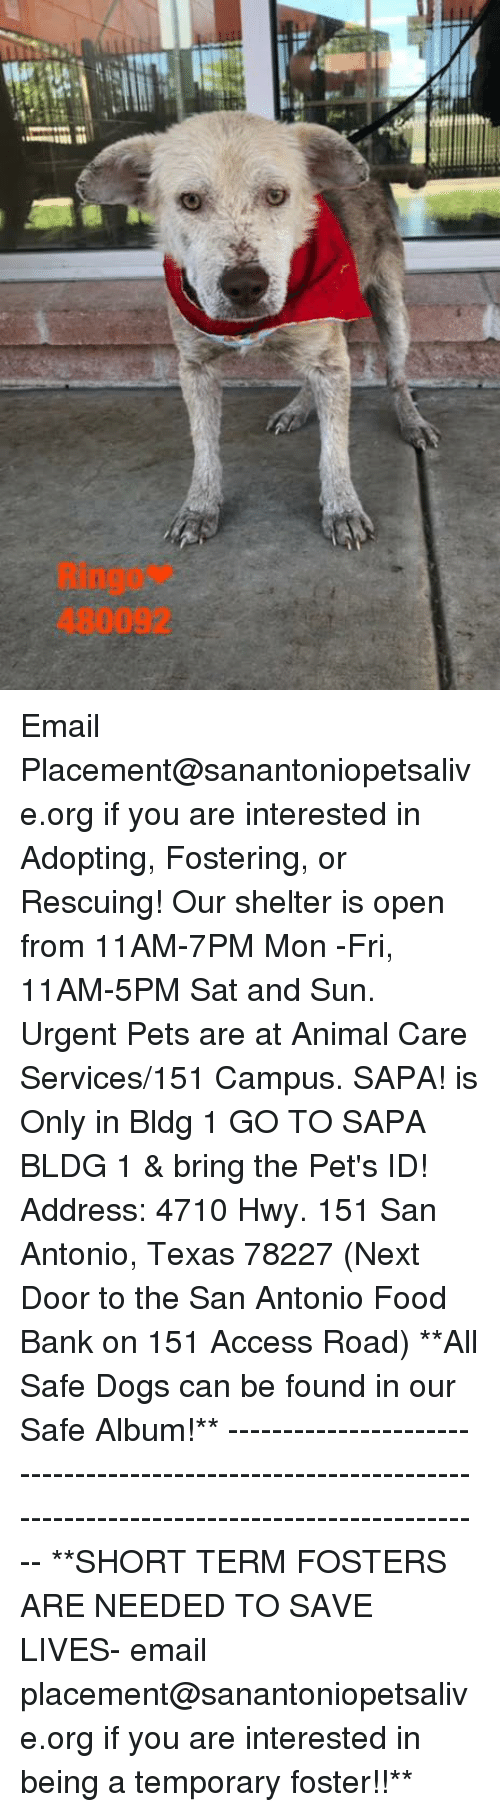 food bank: Ringo*  480092 Email Placement@sanantoniopetsalive.org if you are interested in Adopting, Fostering, or Rescuing!  Our shelter is open from 11AM-7PM Mon -Fri, 11AM-5PM Sat and Sun.  Urgent Pets are at Animal Care Services/151 Campus. SAPA! is Only in Bldg 1 GO TO SAPA BLDG 1 & bring the Pet's ID! Address: 4710 Hwy. 151 San Antonio, Texas 78227 (Next Door to the San Antonio Food Bank on 151 Access Road)  **All Safe Dogs can be found in our Safe Album!** ---------------------------------------------------------------------------------------------------------- **SHORT TERM FOSTERS ARE NEEDED TO SAVE LIVES- email placement@sanantoniopetsalive.org if you are interested in being a temporary foster!!**